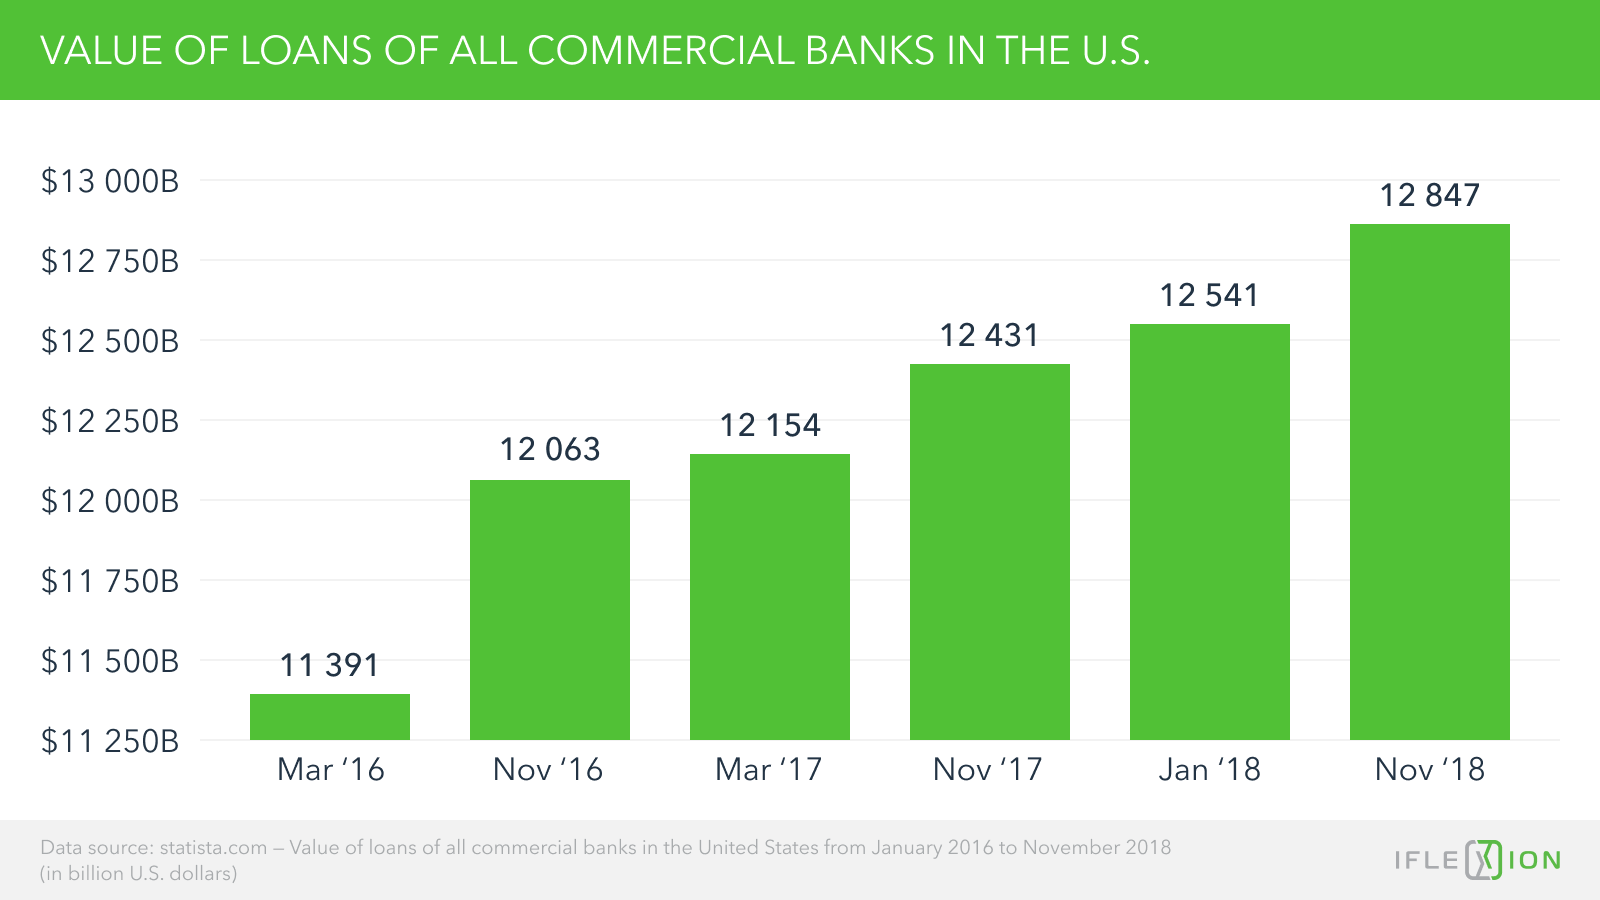 Value of loans of all commercial banks in the United States from January 2016 to November 2018 (in billion U.S. dollars)